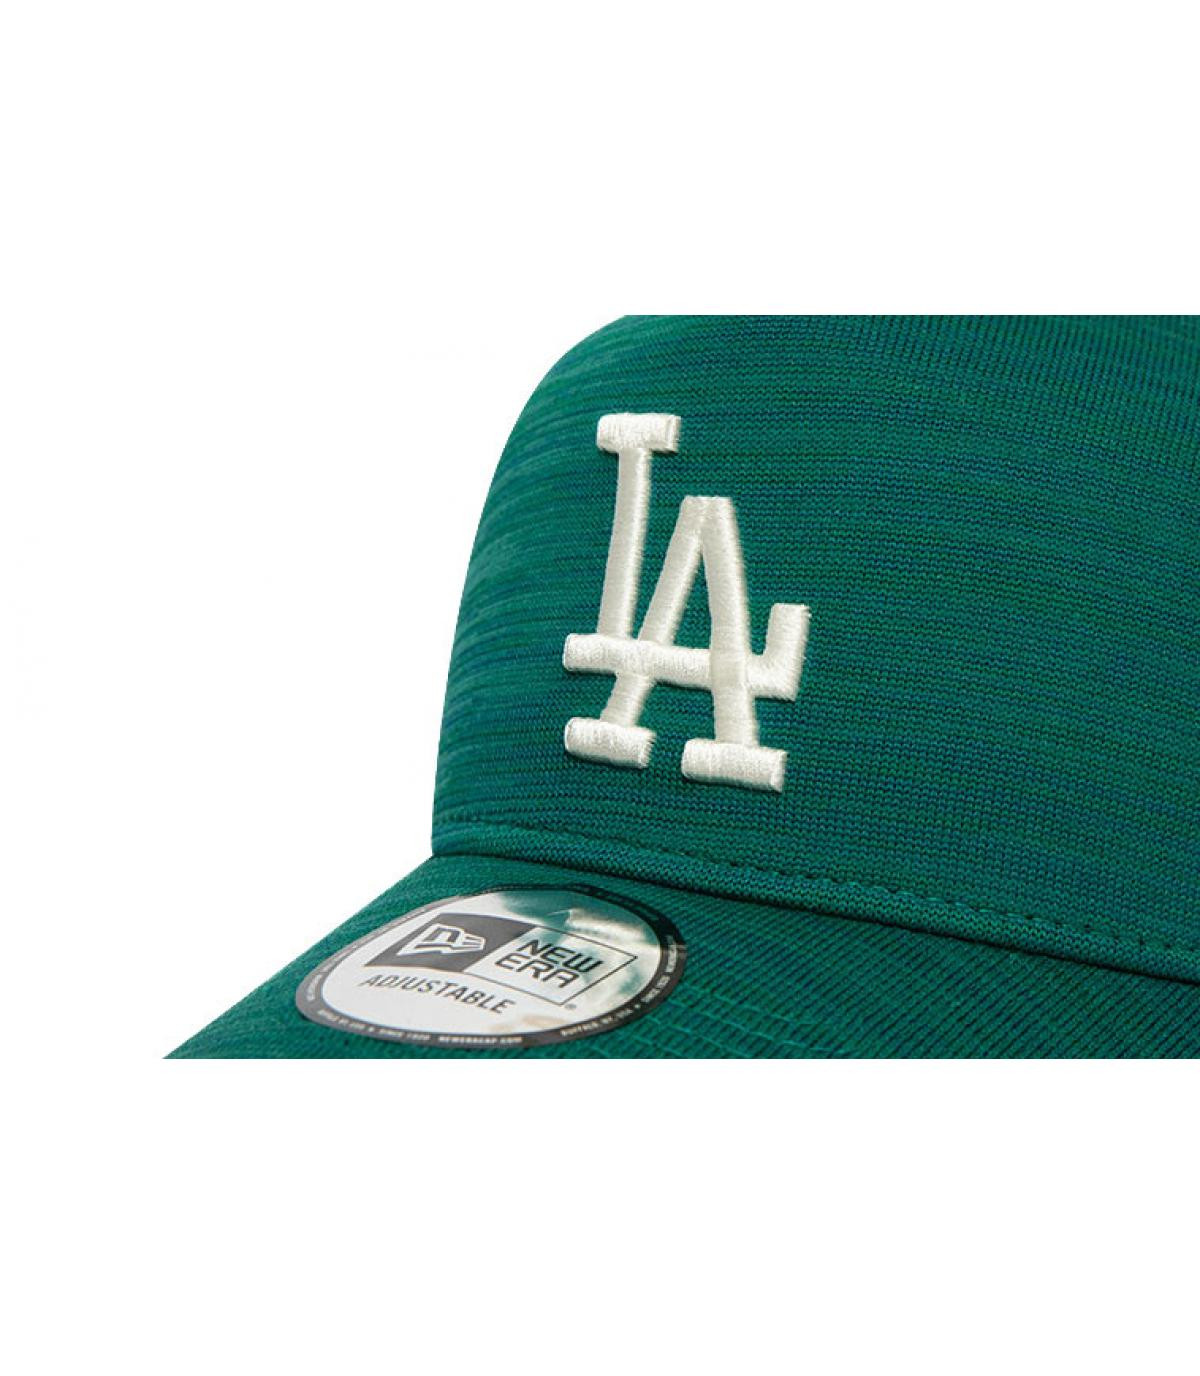 Détails Casquette Engineered Fit LA Aframe midnight green - image 3